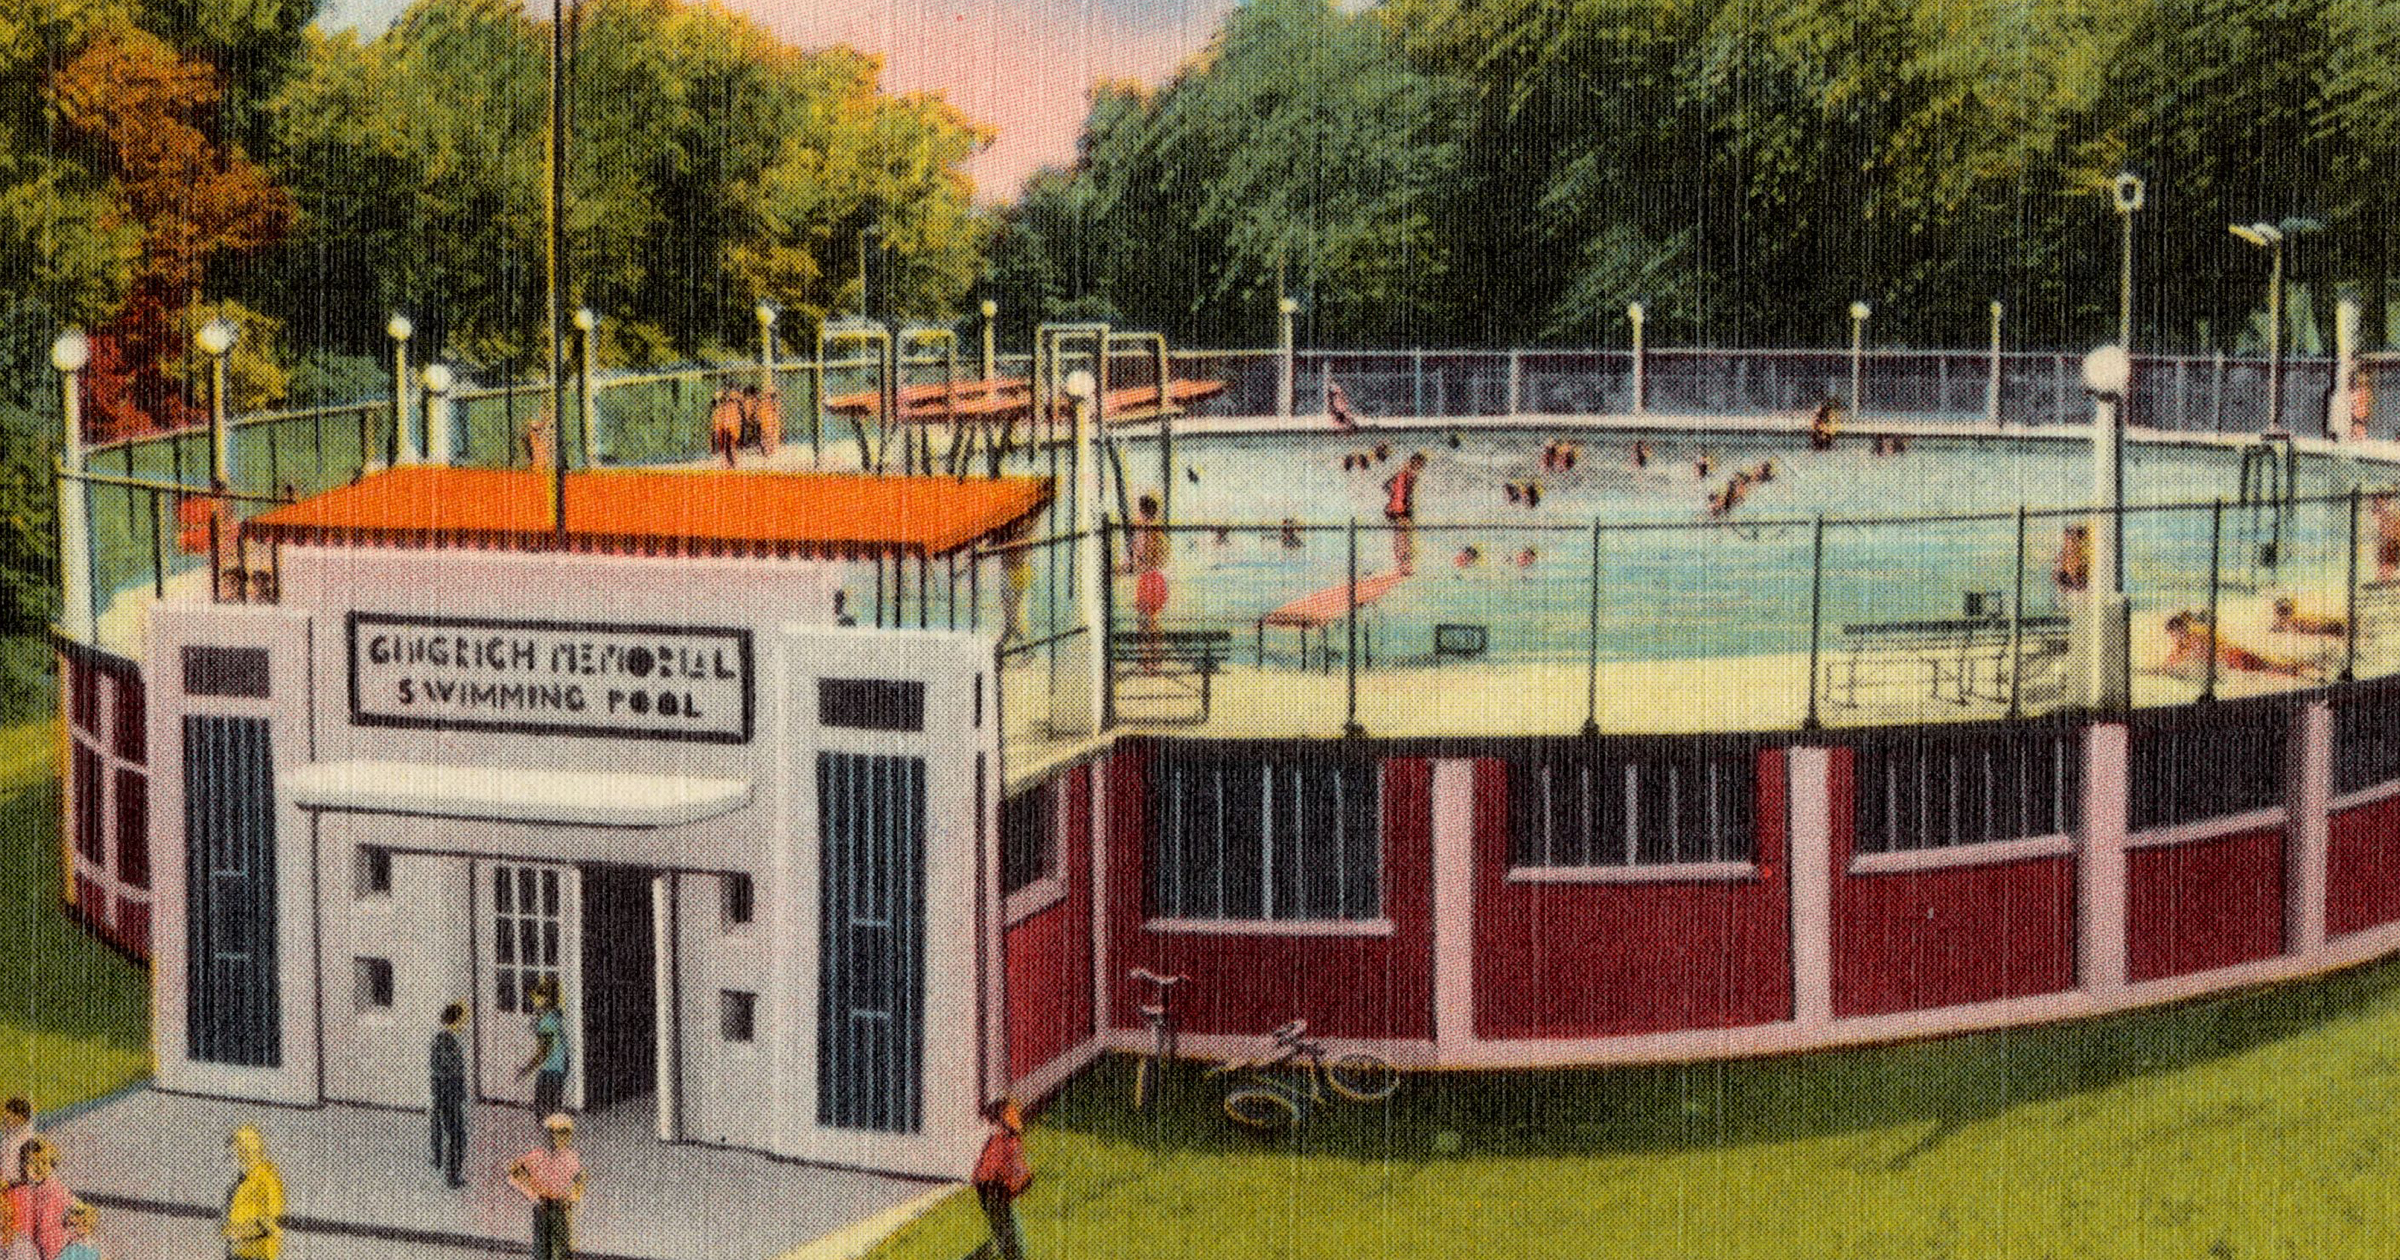 Lebanon City Council previews plan to demolish Gingrich Memorial Pool, expects vote Monday